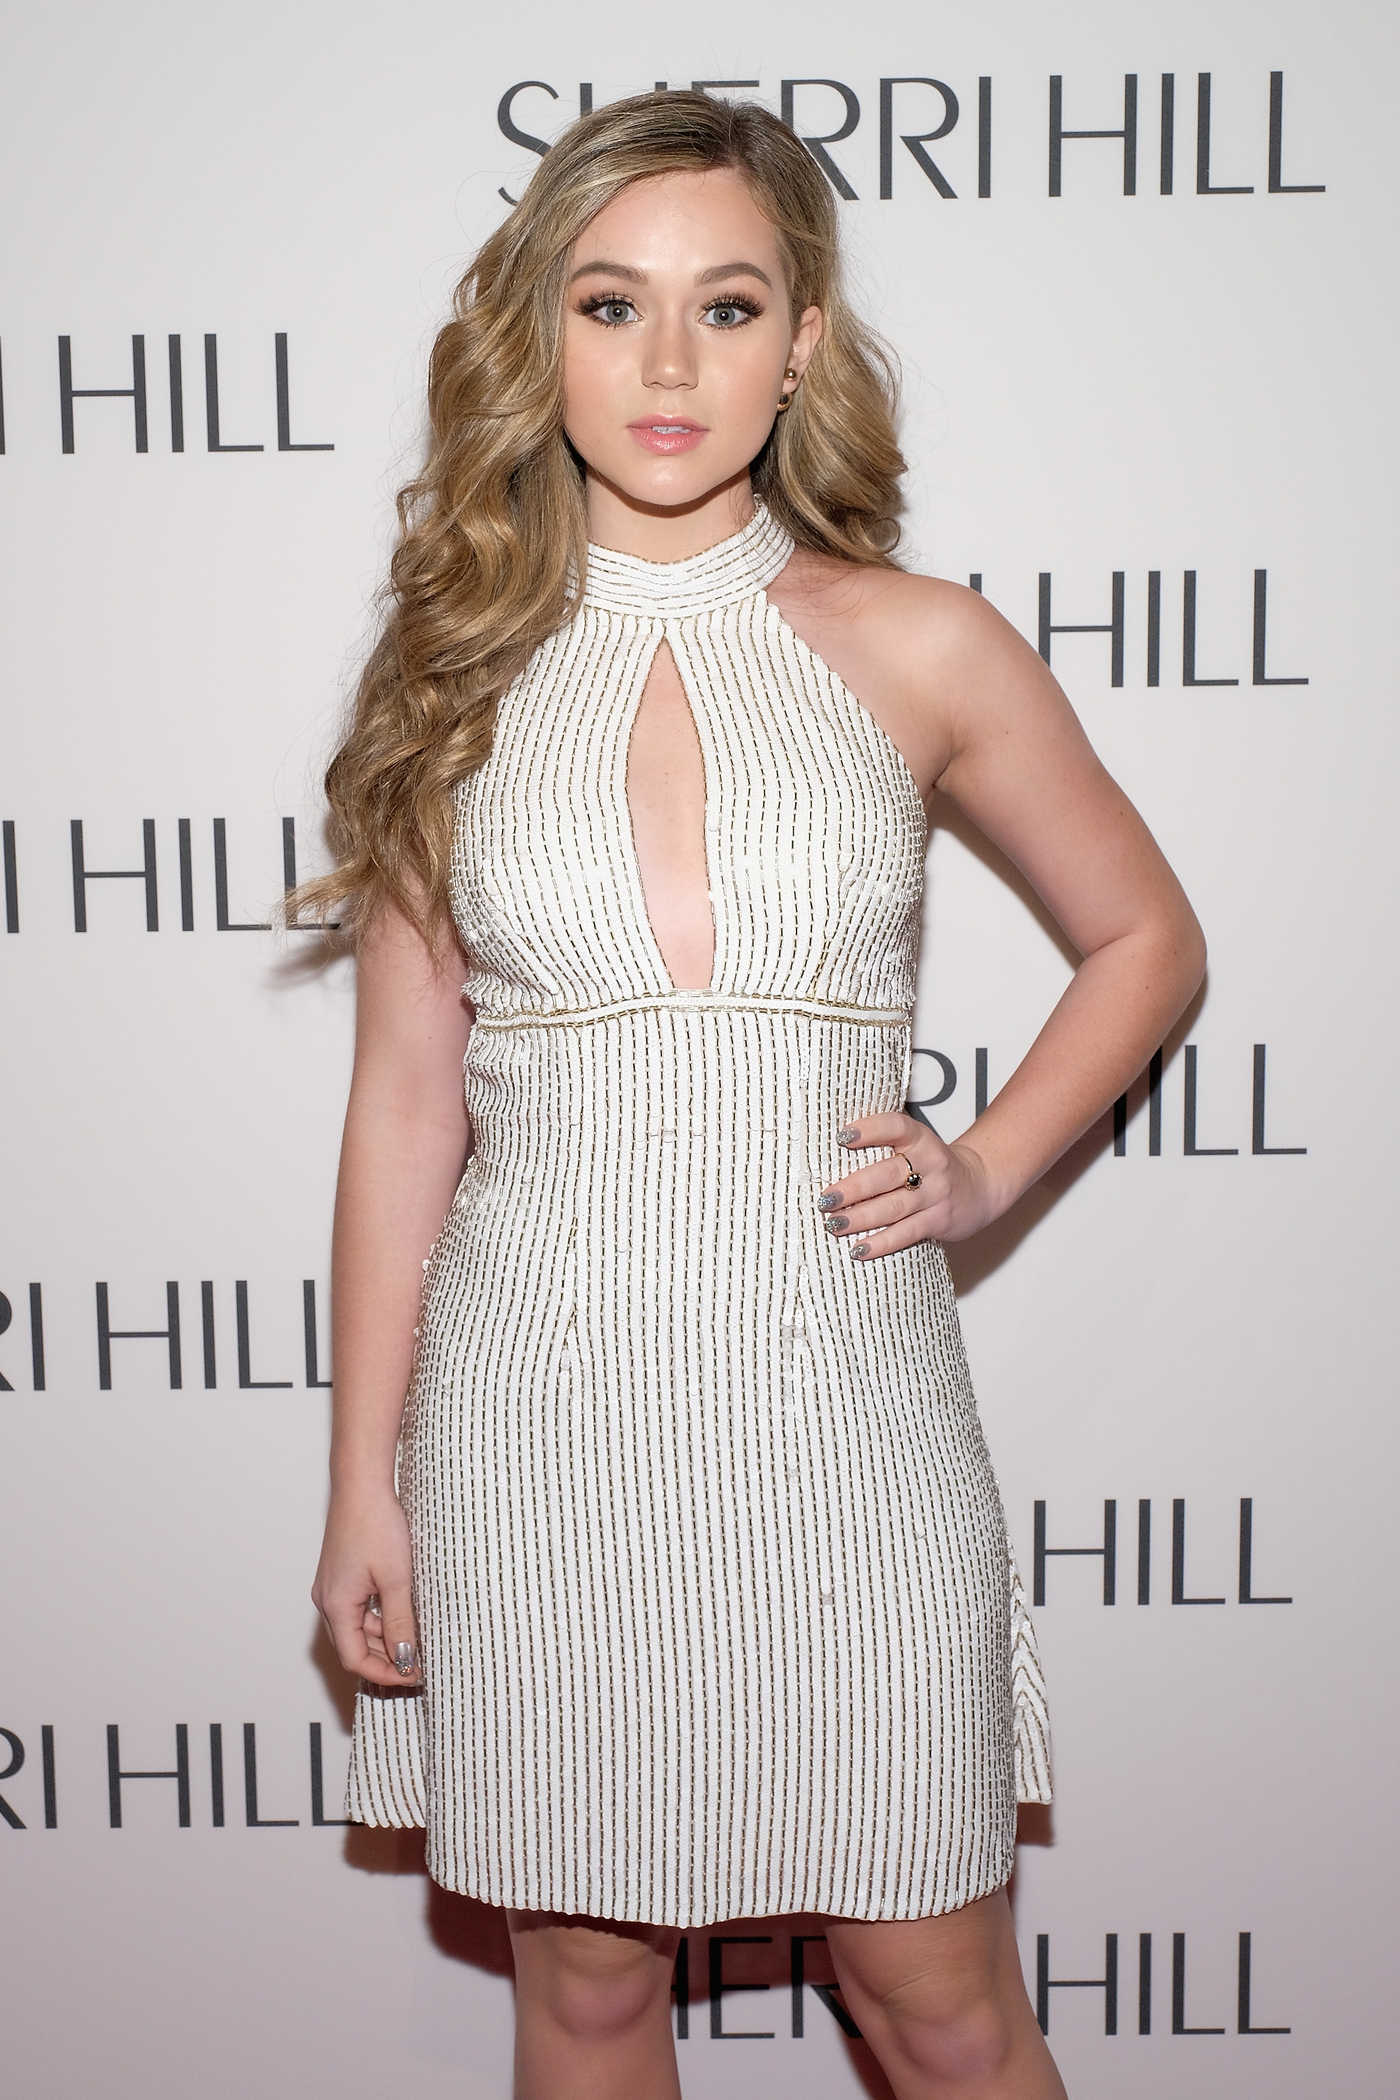 Brec Bassinger at the Sherri Hill Fashion Show During the New York Fashion Week 02/13/2017